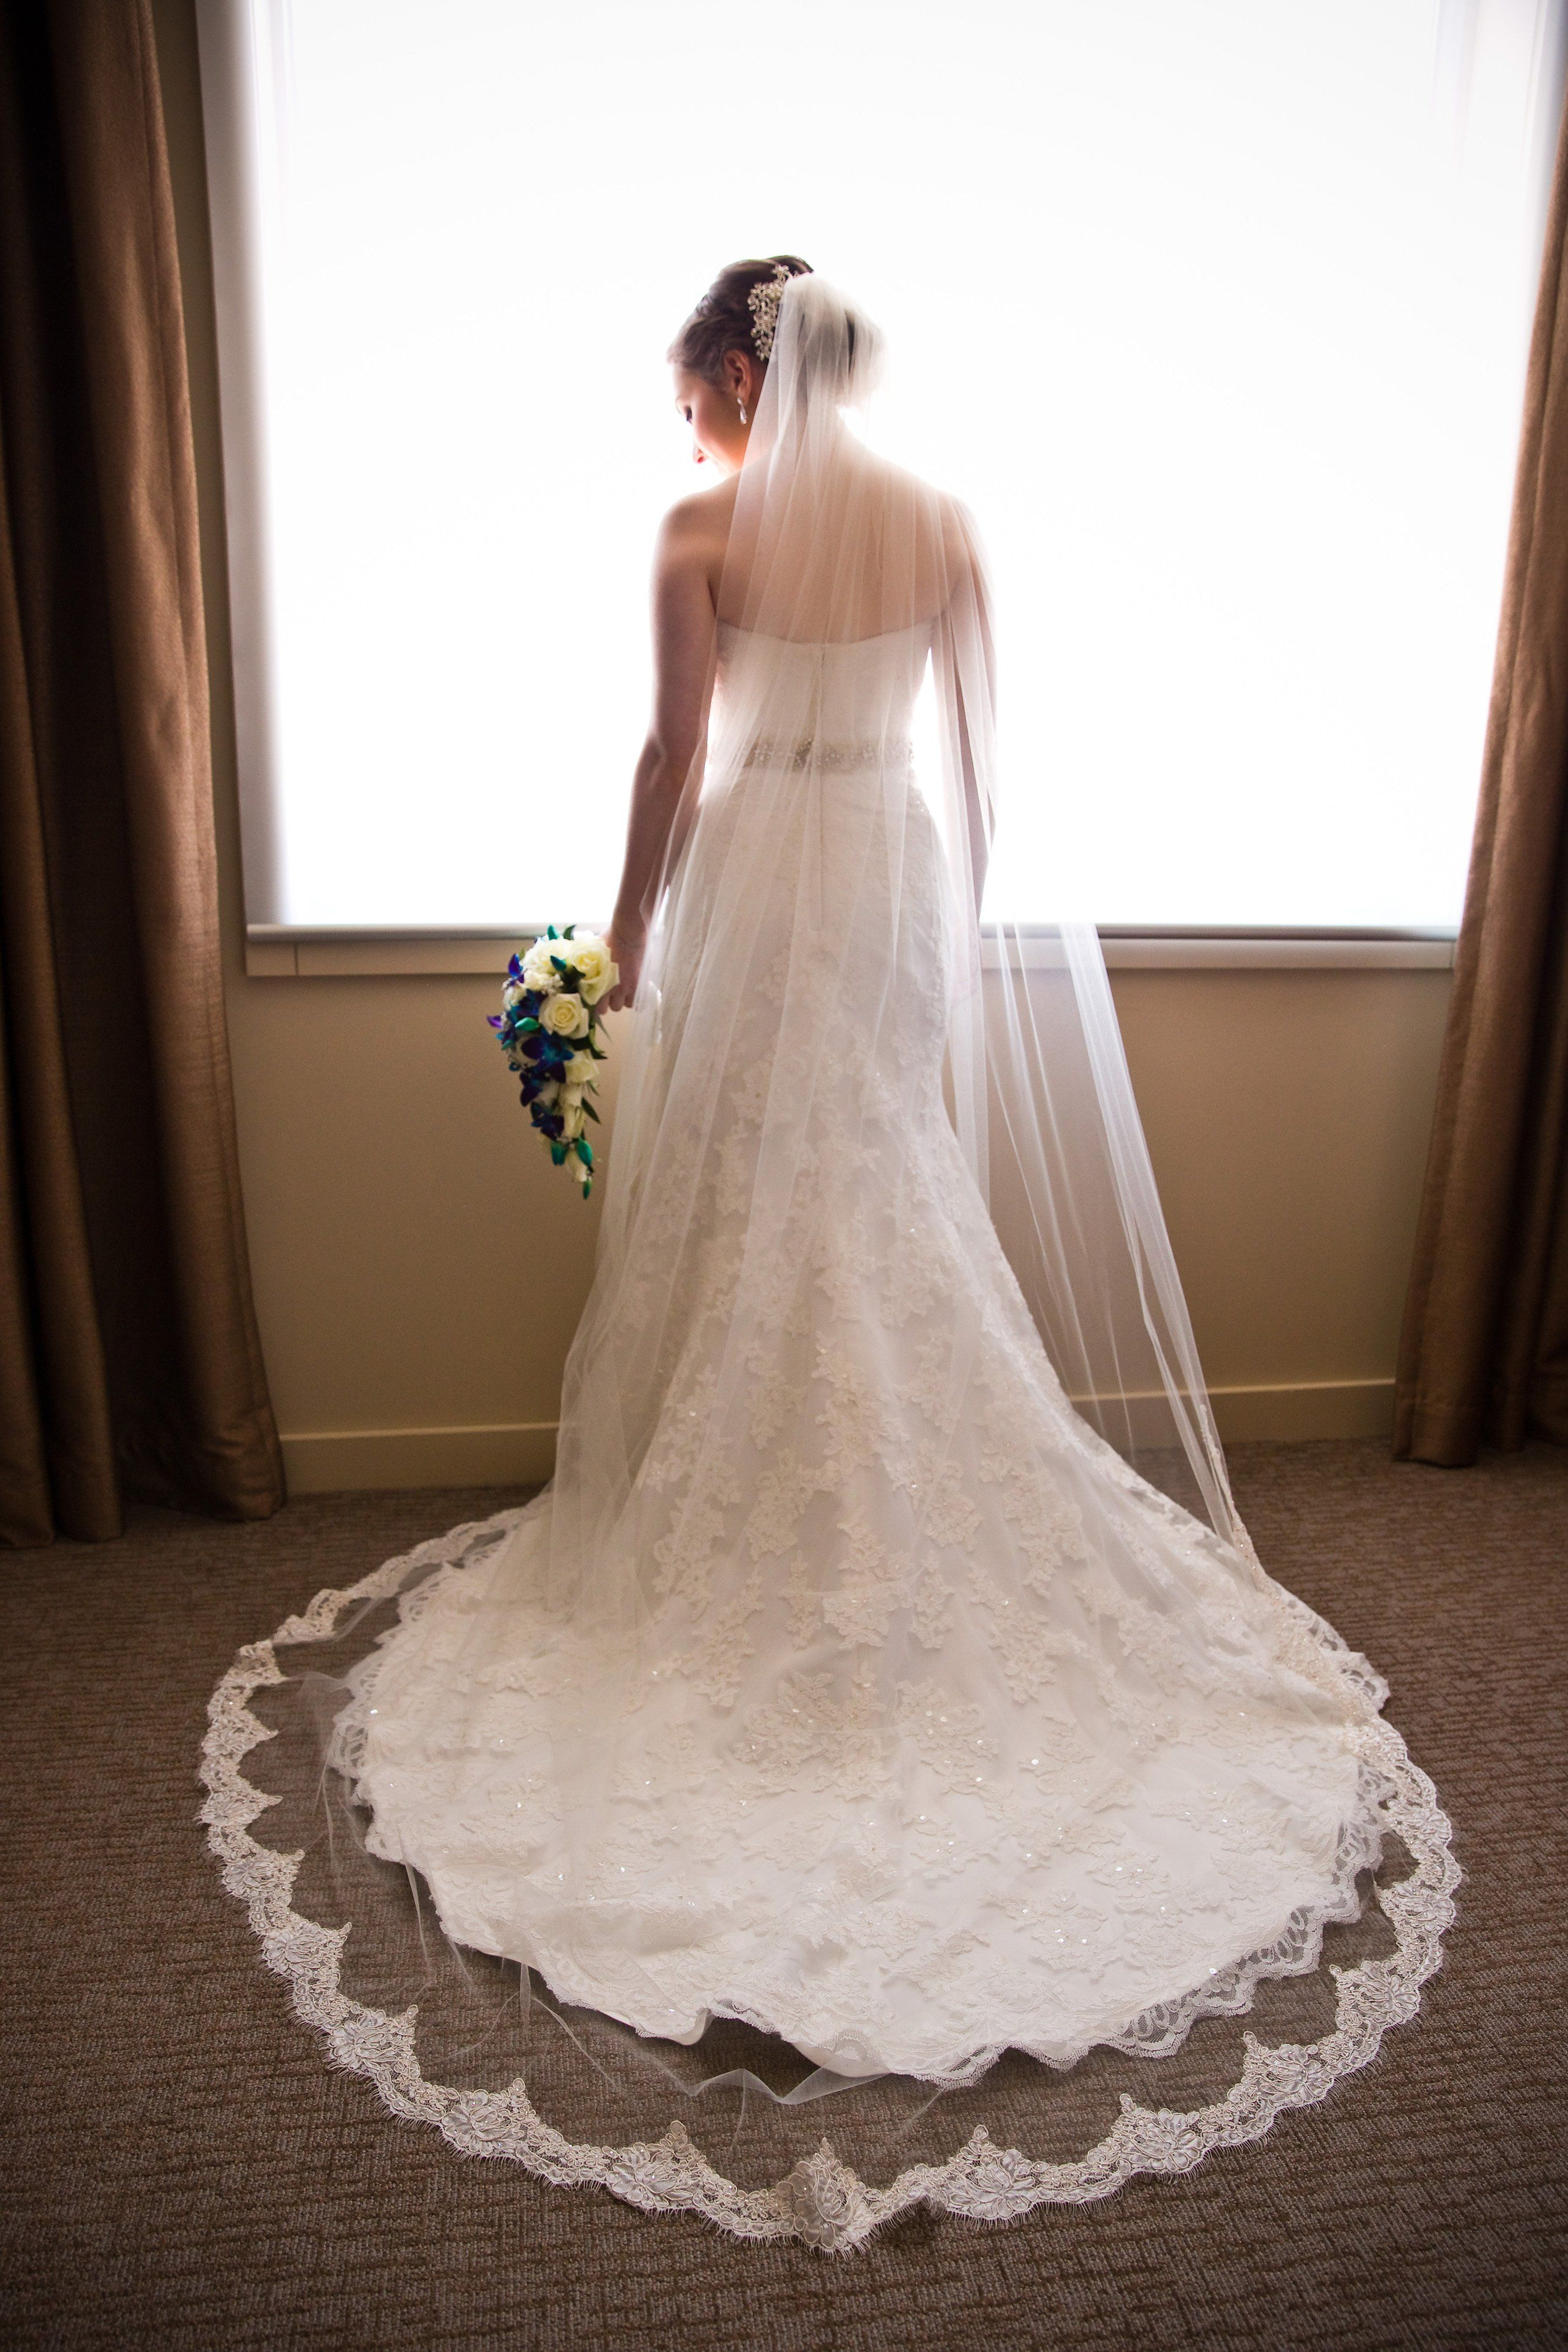 Faithful French Lace Cathedral Wedding Veil Wedding Veils Lace Tulle Wedding Veil Wedding Dresses Lace [ 4000 x 2667 Pixel ]